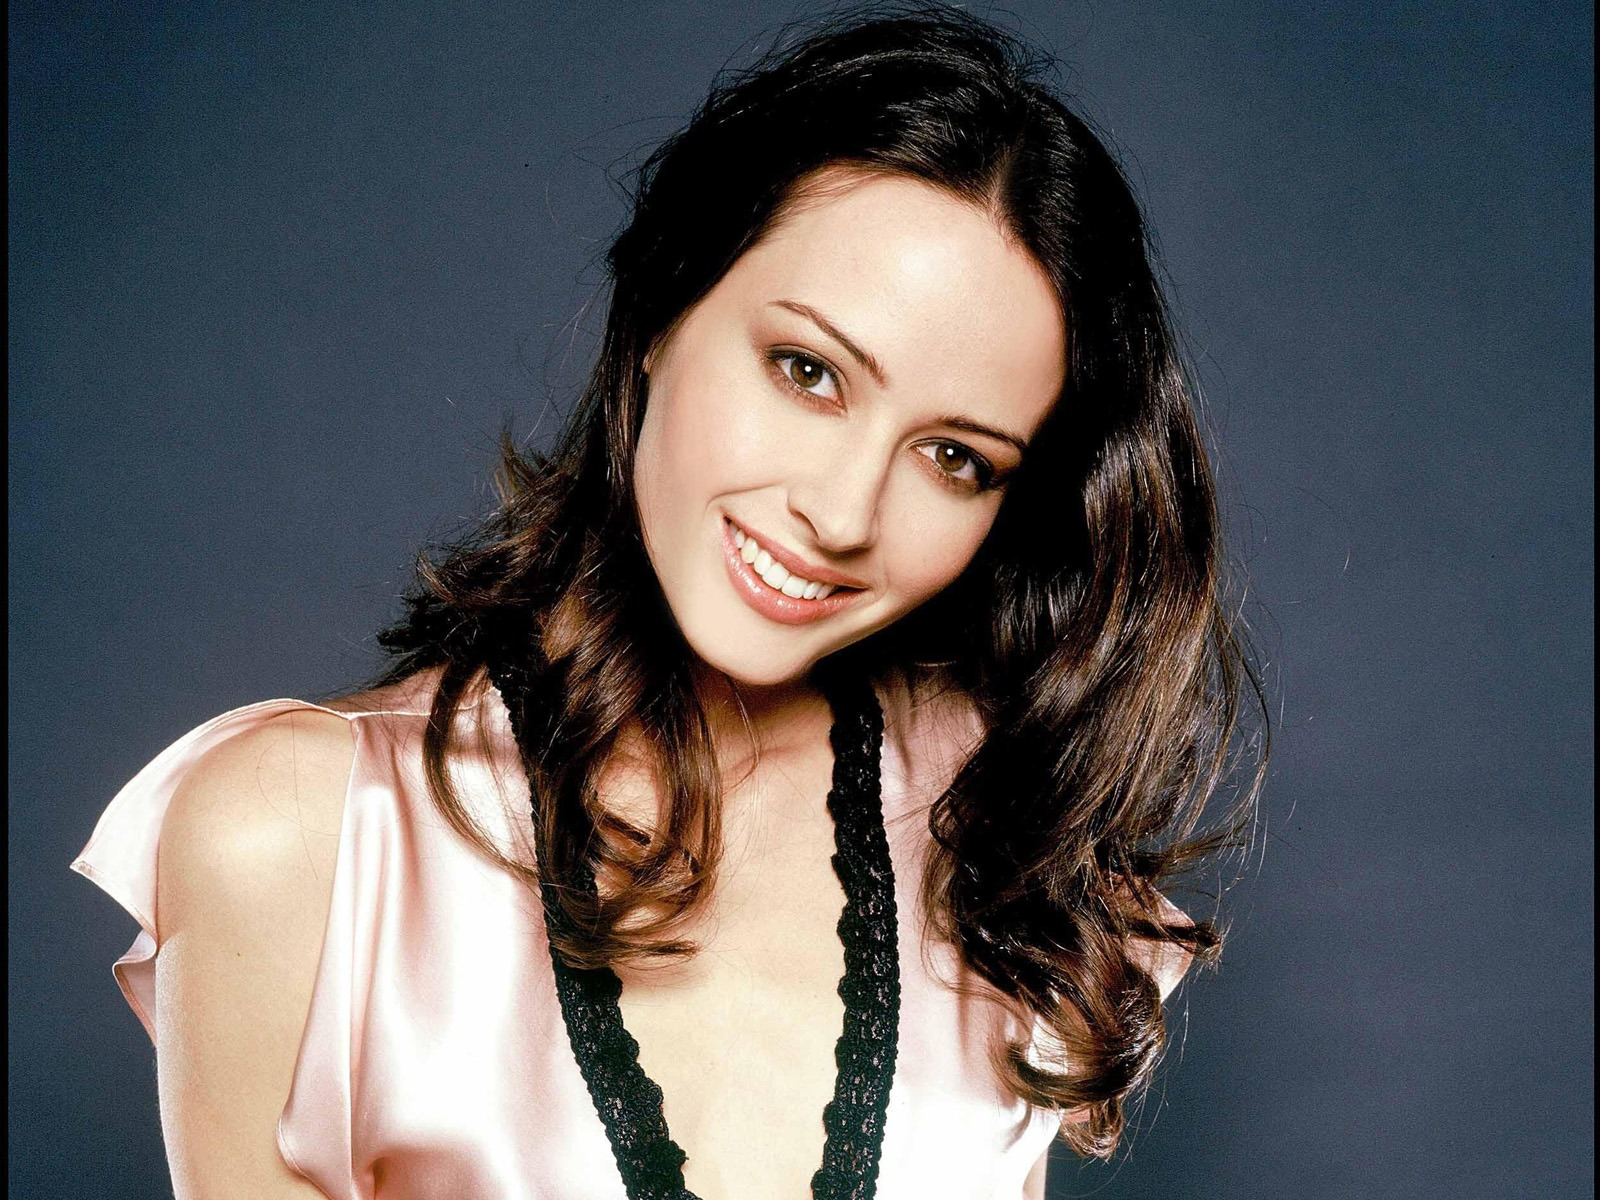 Amy Acker #016 - 1600x1200 Wallpapers Pictures Photos Images